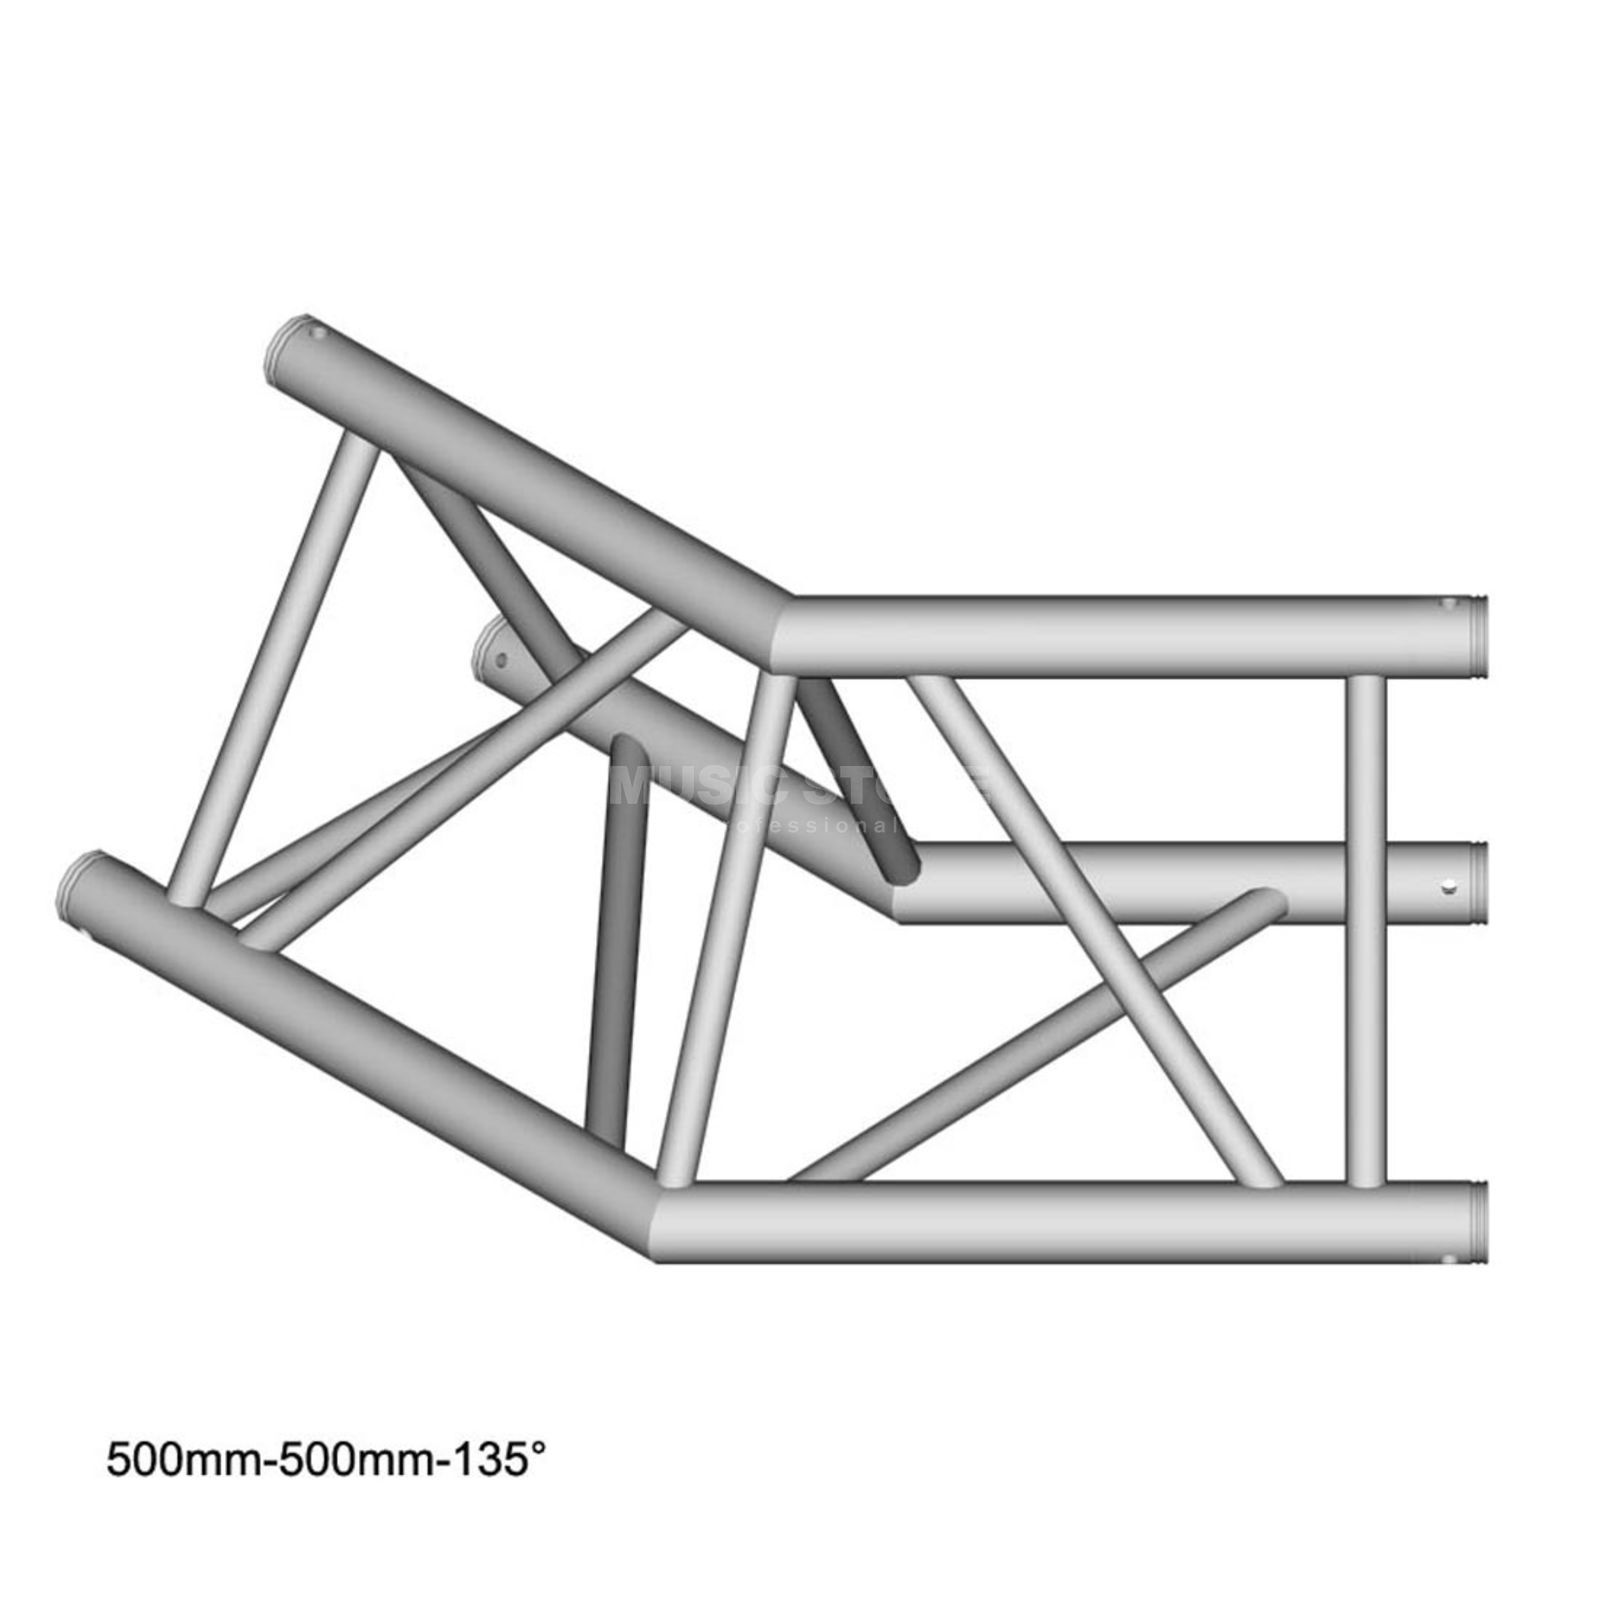 DURATRUSS DT 43 C23-L135, 3-Point Truss 135° Corner, 2-Way Produktbillede